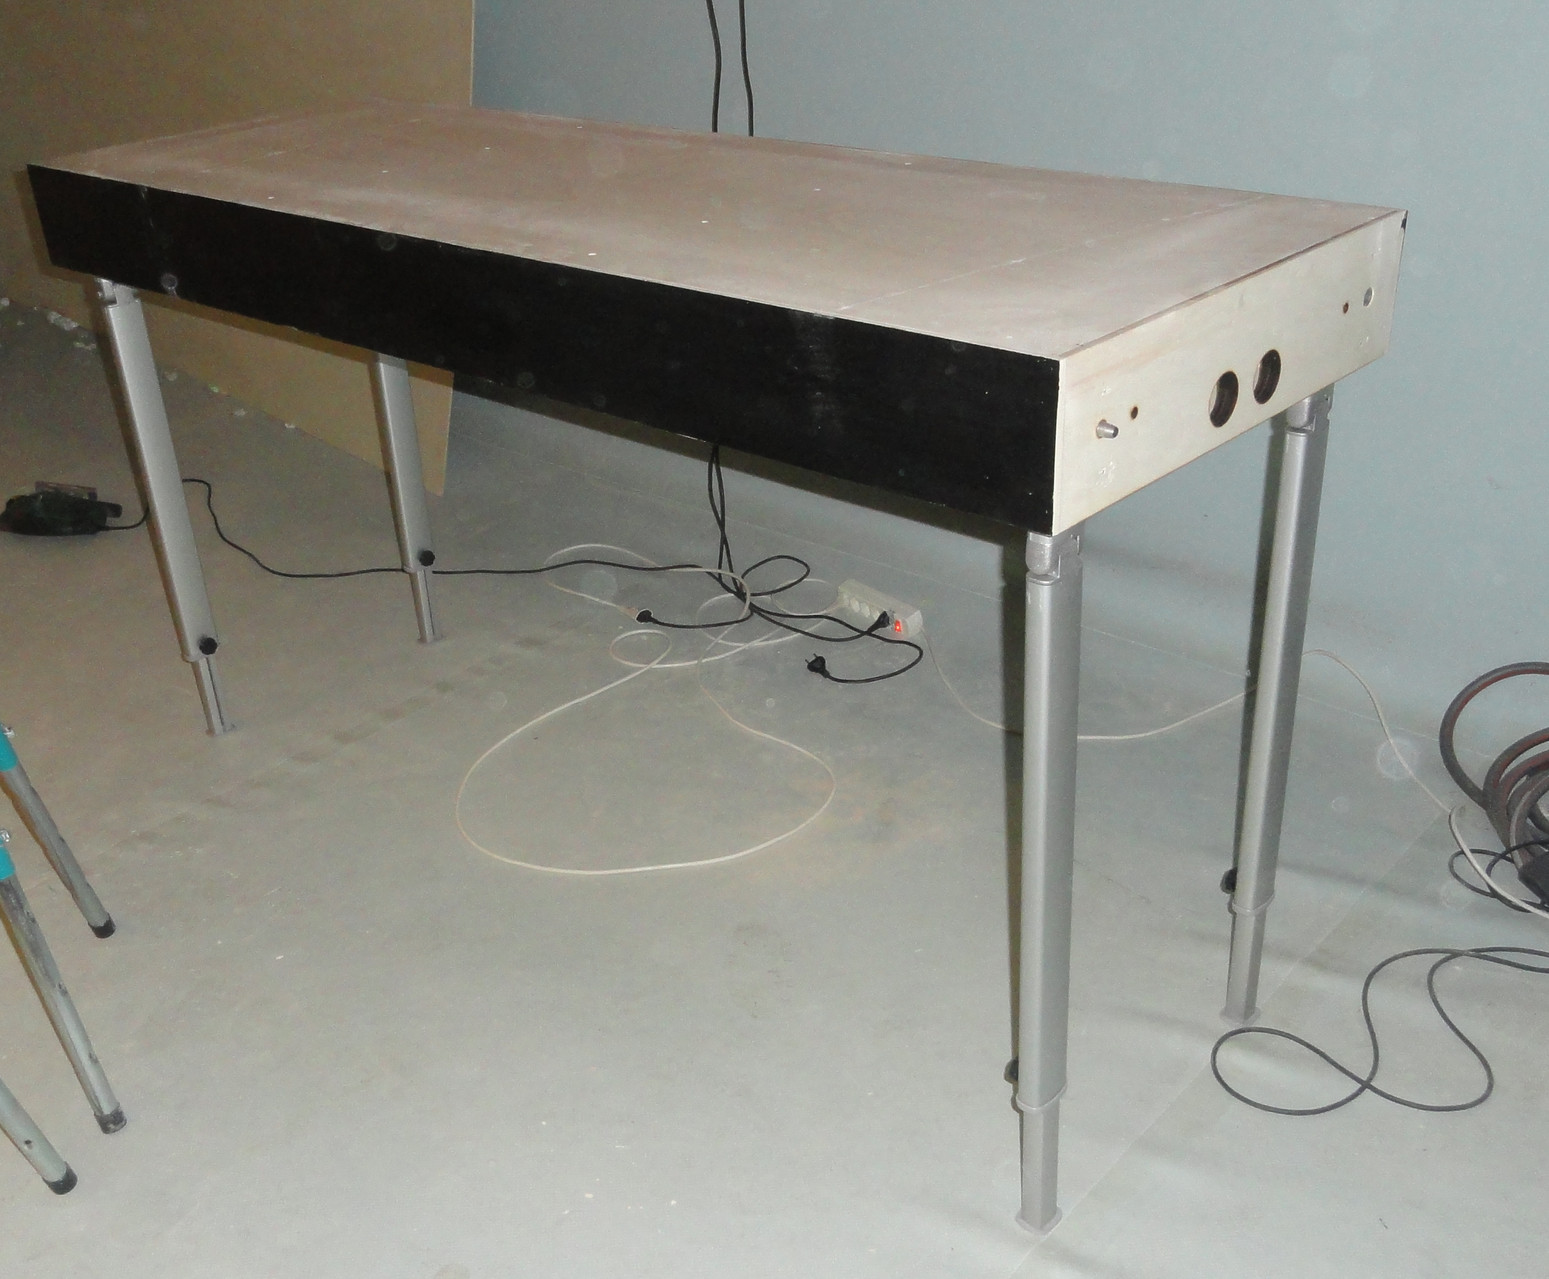 Module construction. Modul 1 with 4 legs